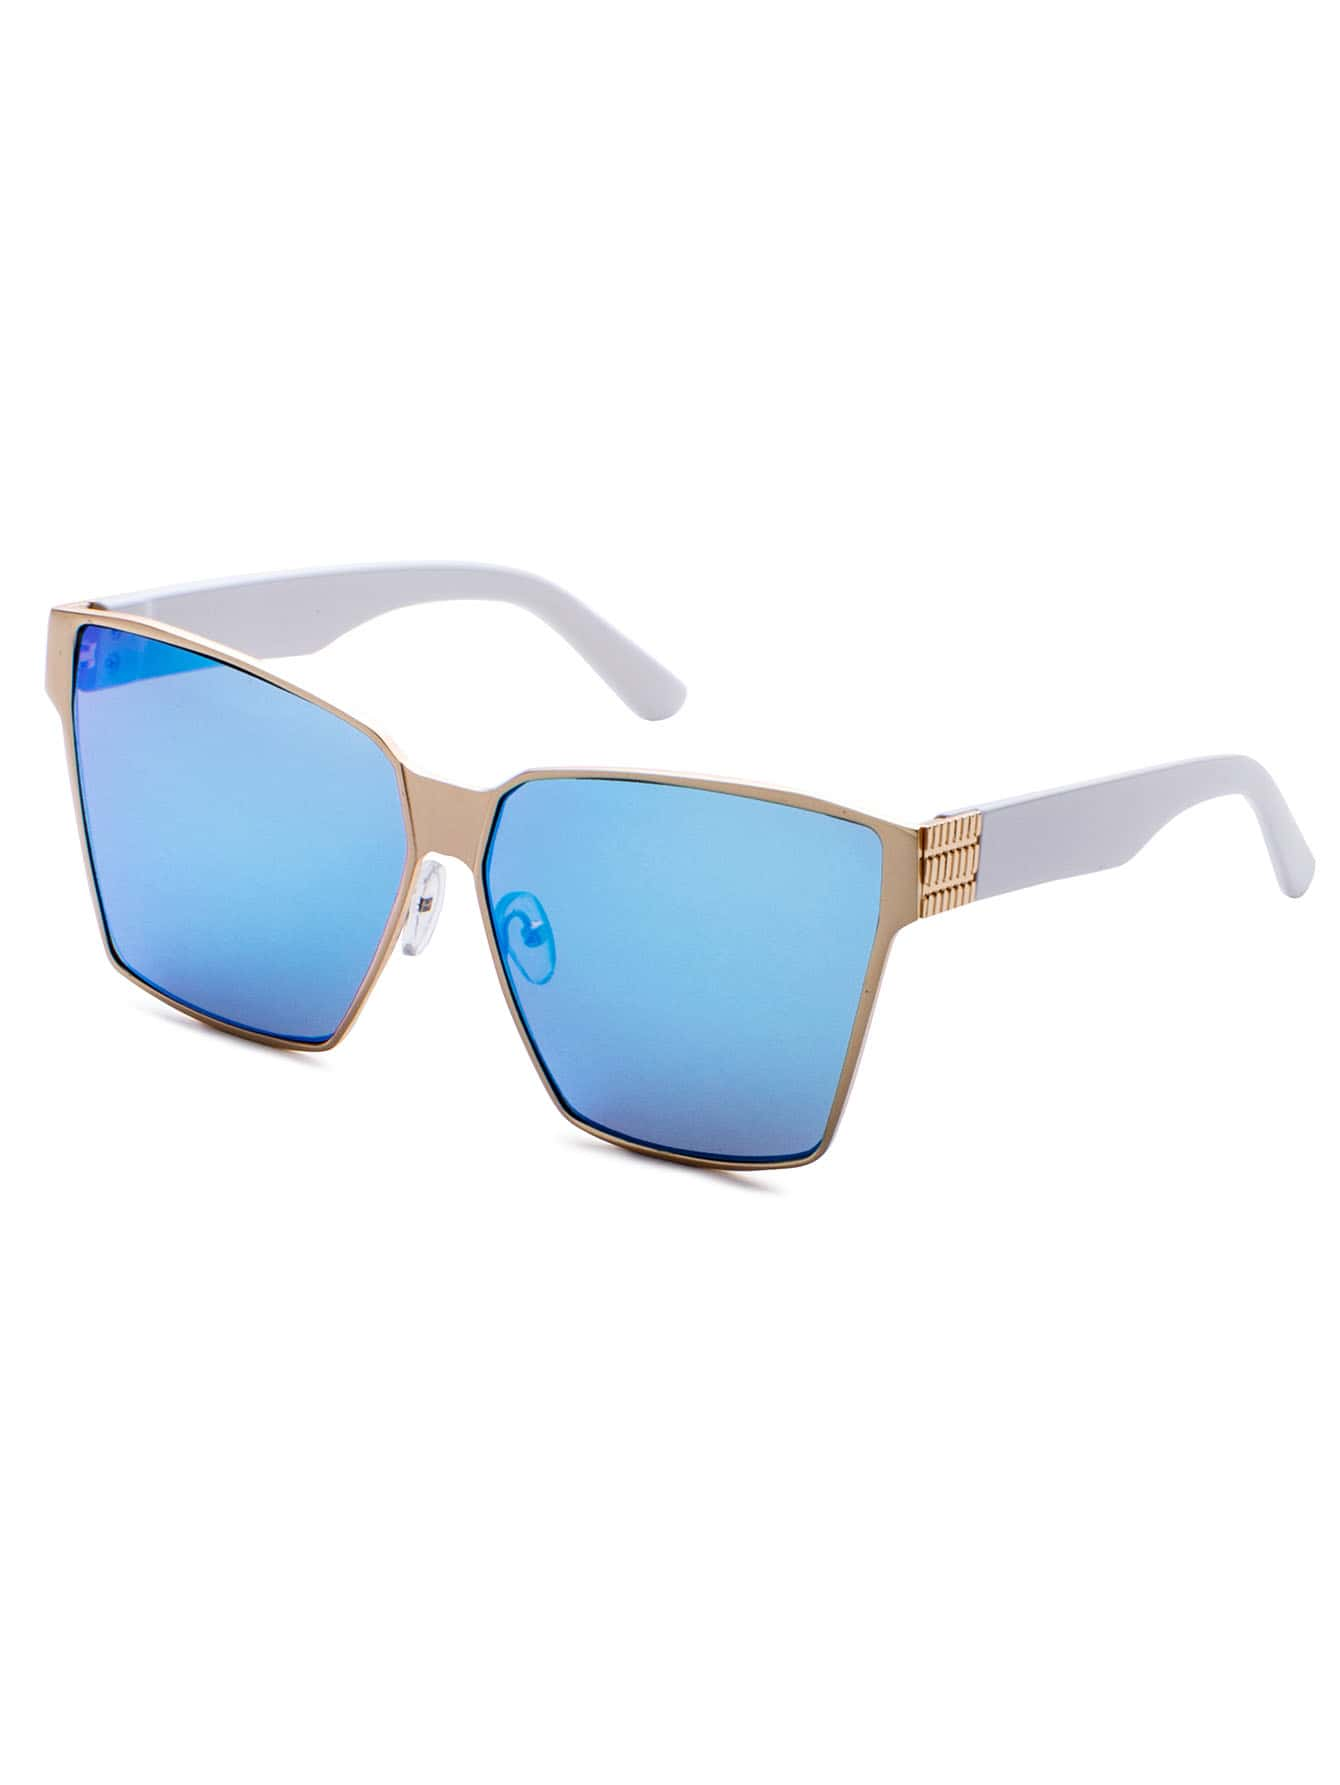 Metal Geometric Frame Blue Lens Sunglasses sunglass161012301